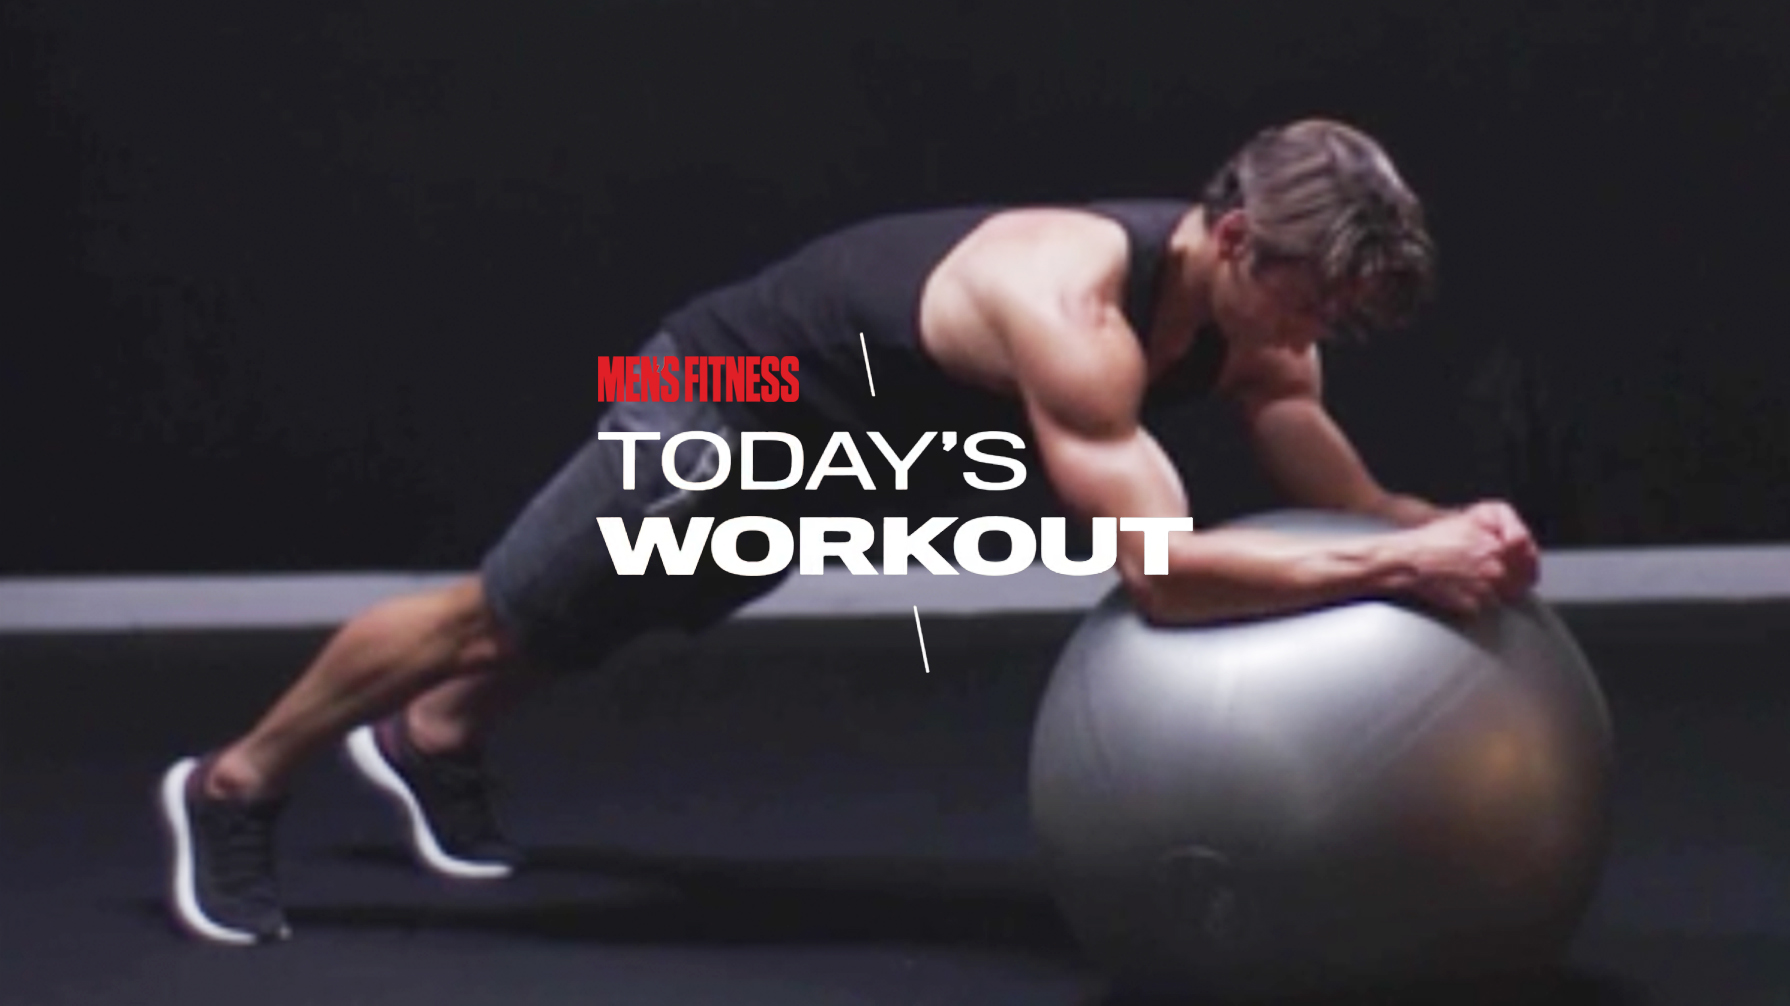 Today's Workout 103: 4 unconventional moves to build your chest and core